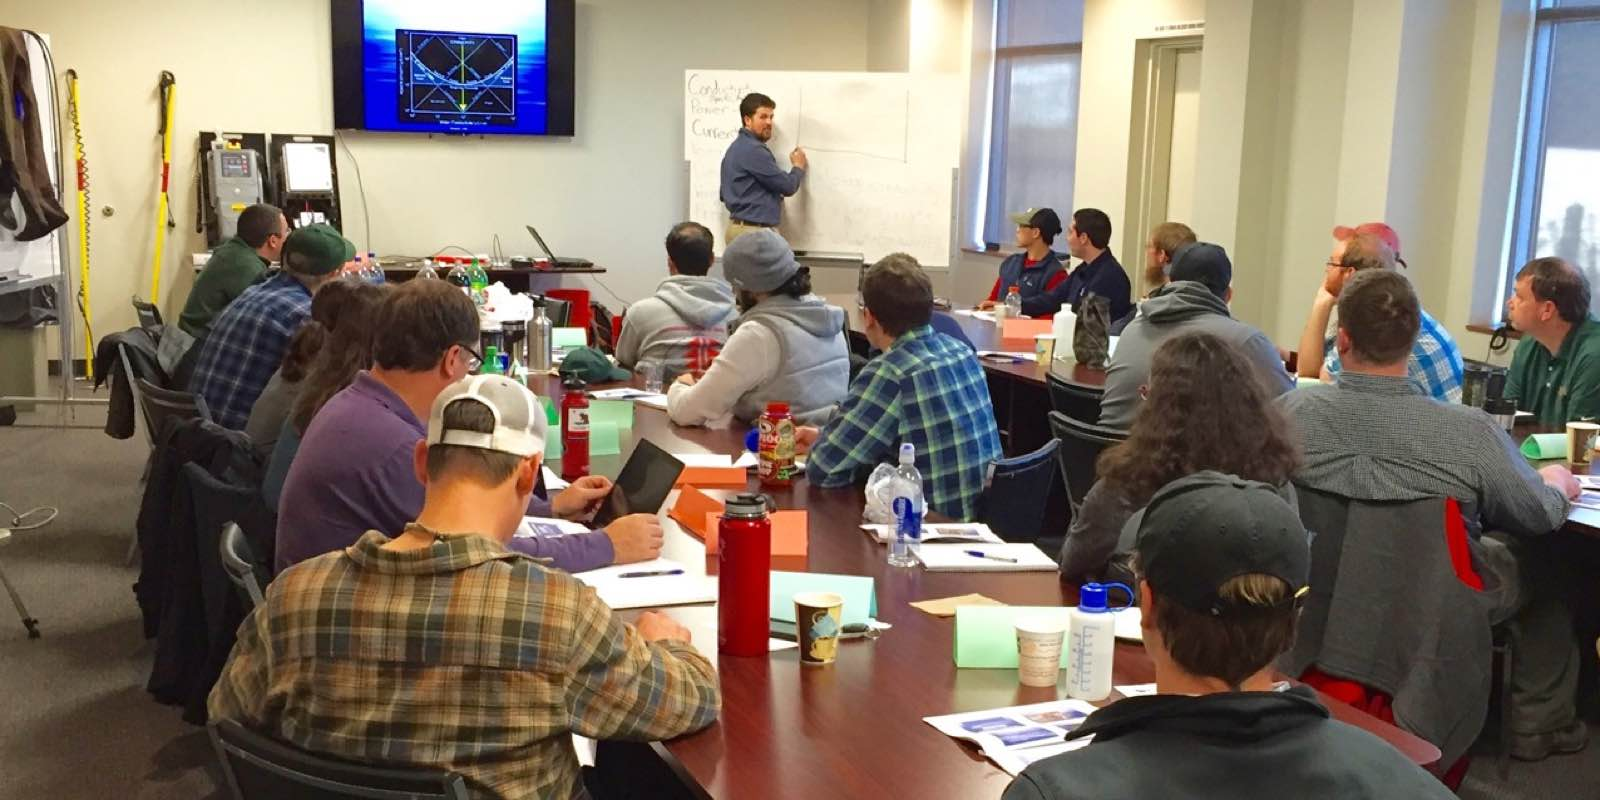 Electrofishing Principles and Safety Certification Course